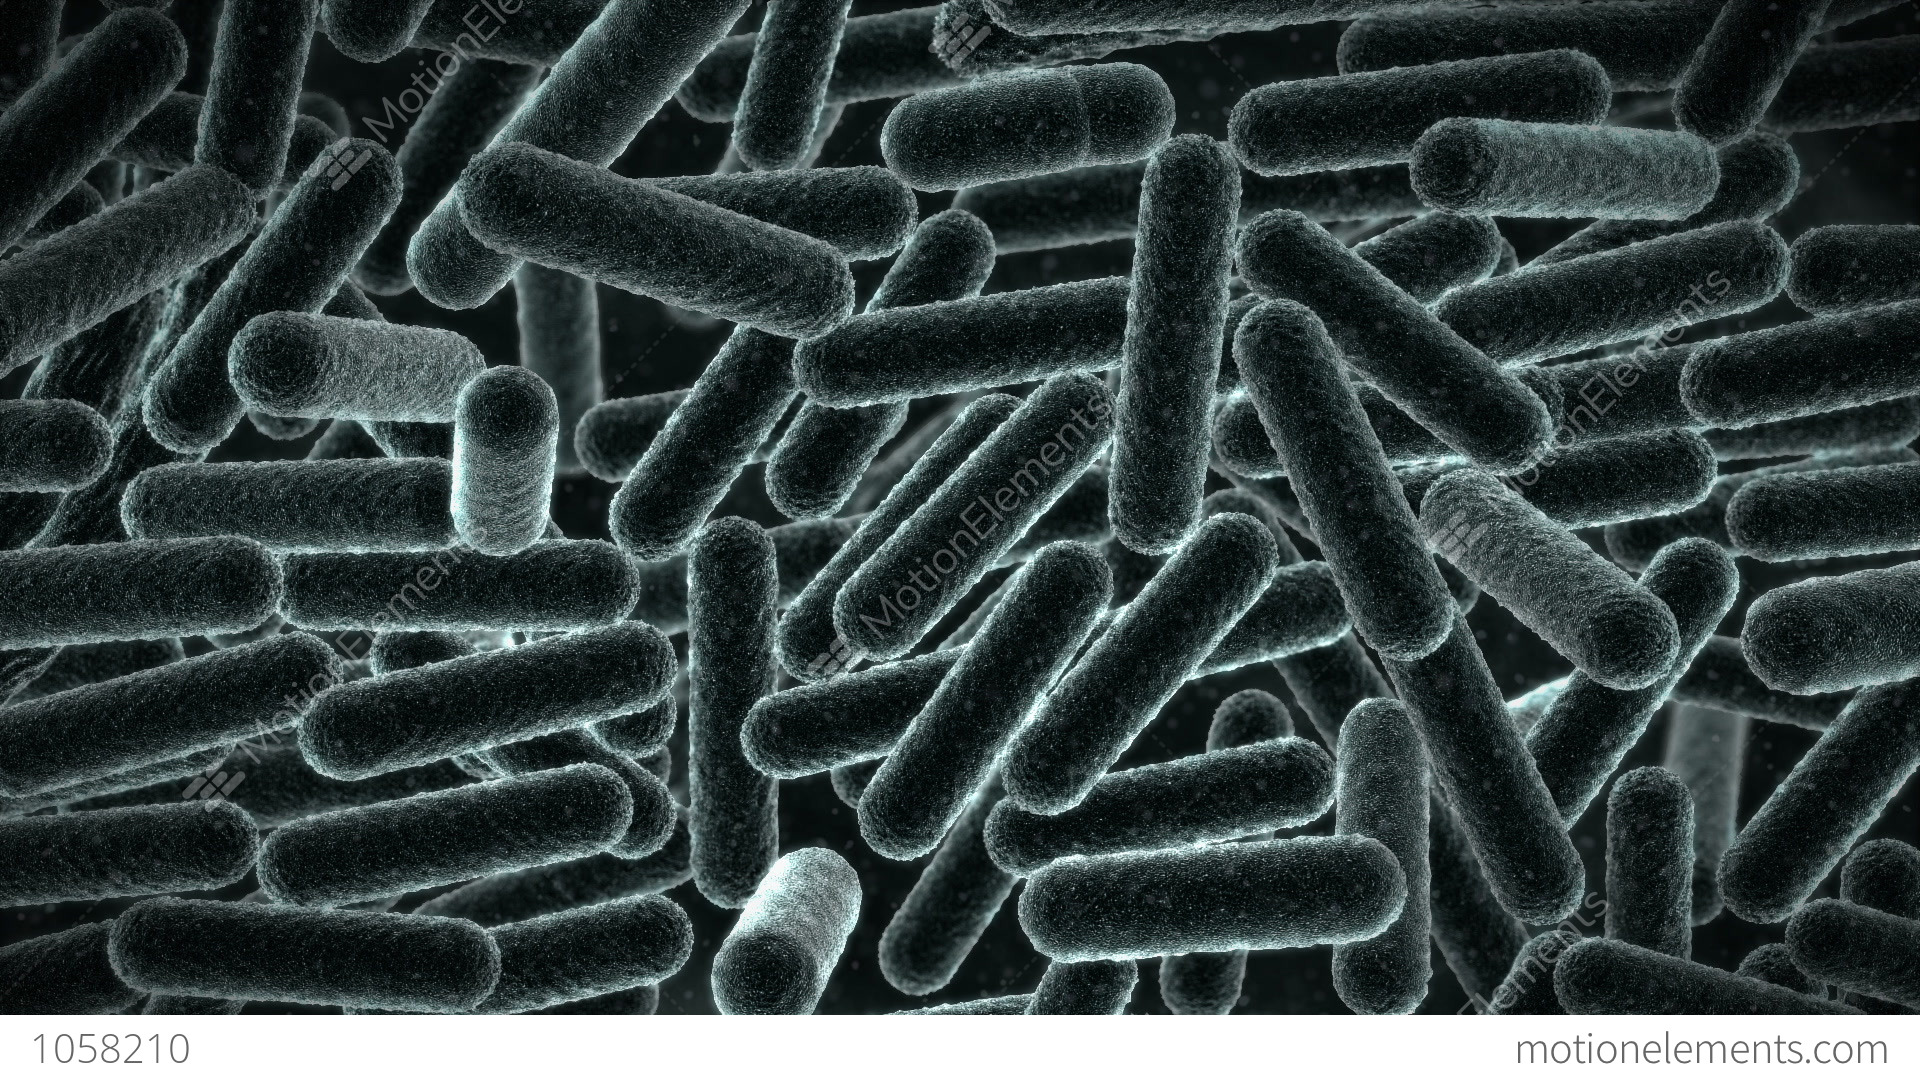 the personal opinion of the microscopic bacteria from space Bacteria within a biofilm can communicate with each other by producing,  of the  oral microbiome, including microscopy, cultural analysis, enzymatic assays  1),  and its loss can be detrimental to the health of the individual  bacterial  community variation in human body habitats across space and time.